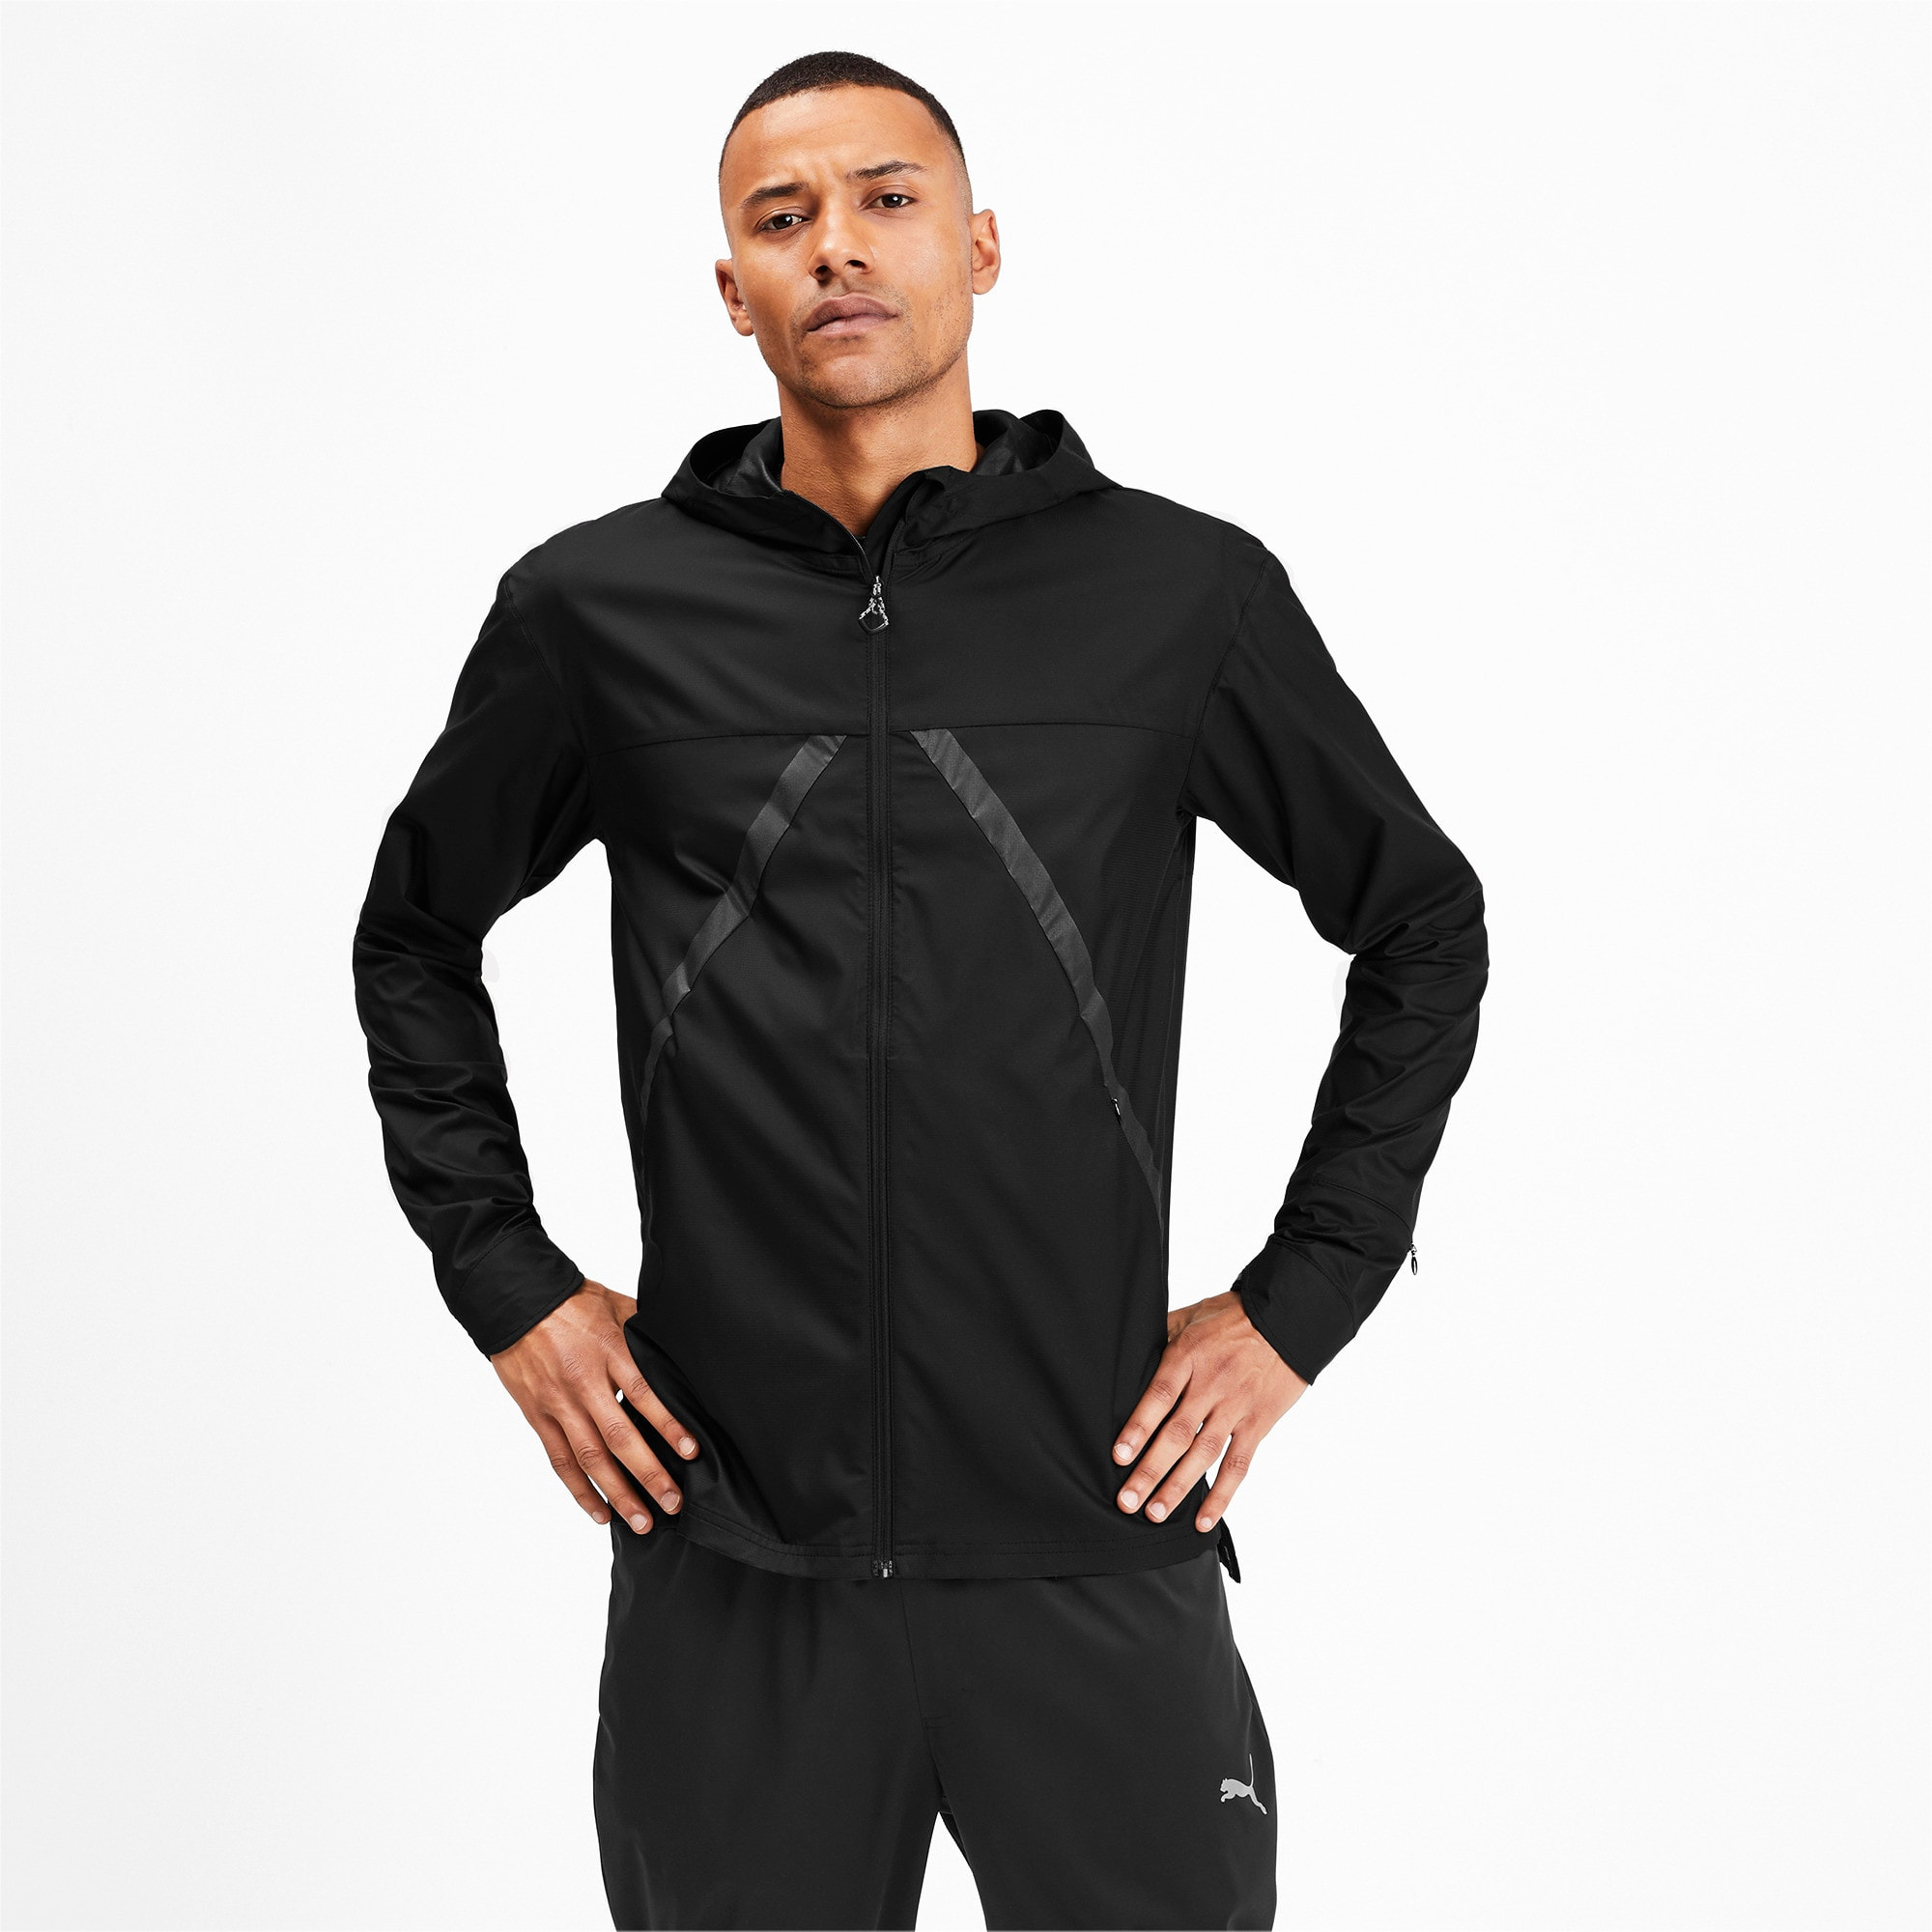 Thumbnail 1 of Last Lap VIZ Men's Running Jacket, Puma Black, medium